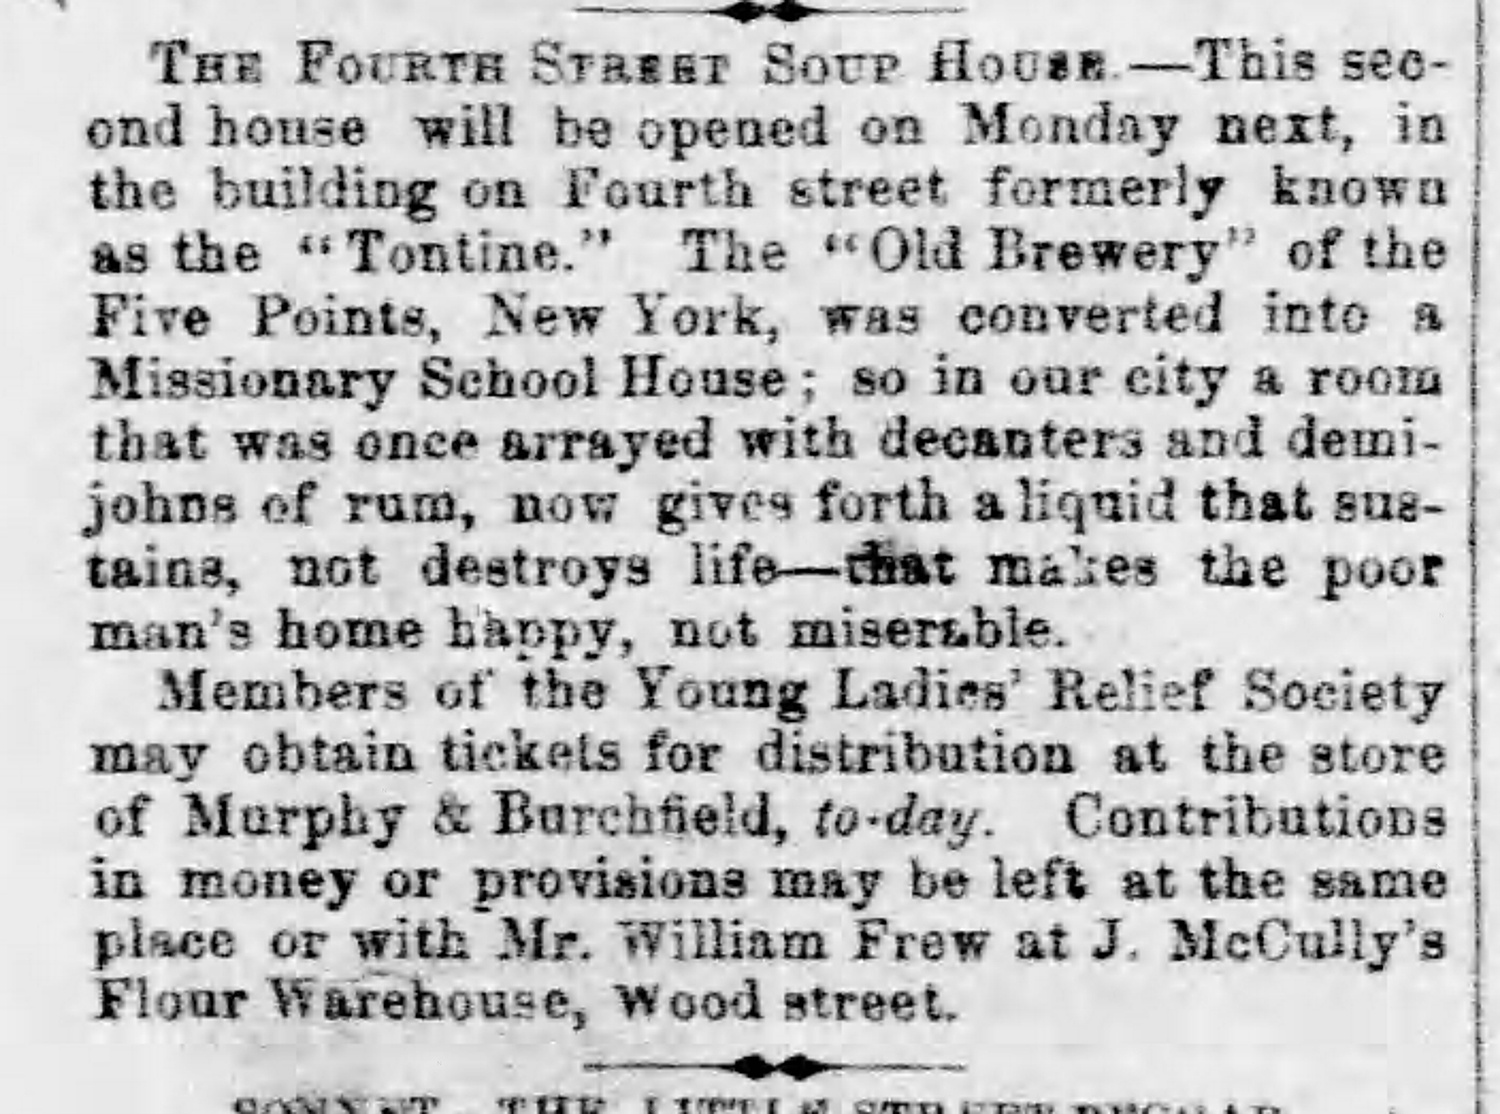 Announcement of the opening of the Fourth Street soup house. The Daily Pittsburgh Gazette, February 2, 1855.